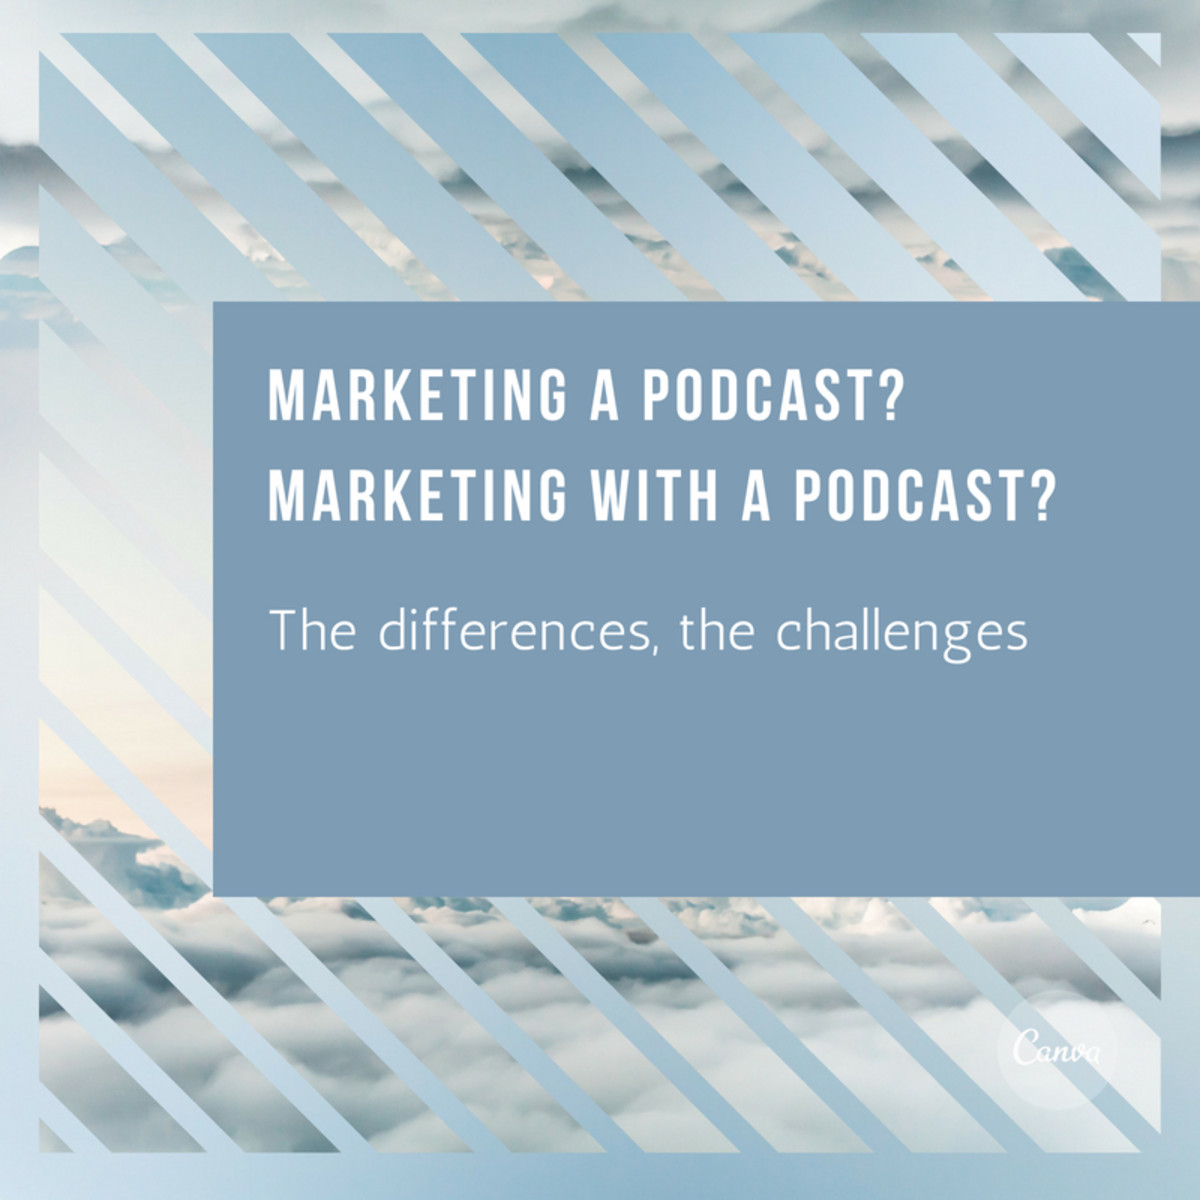 marketing-a-podcast-and-marketing-with-podcasts-the-challenges-of-both